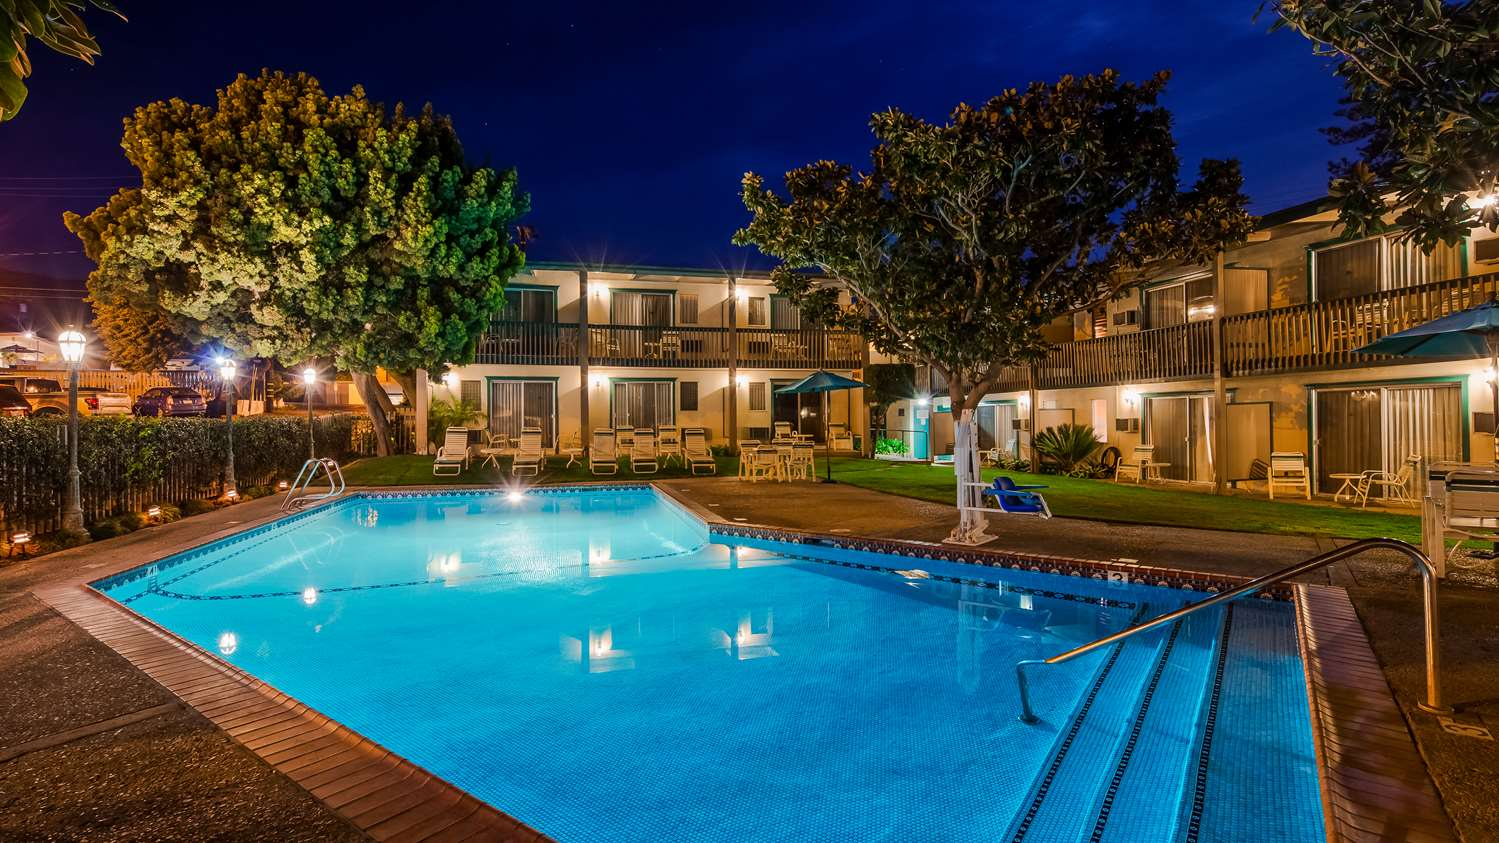 Best Western Plus Encina Inn Santa Barbara, CA - See Discounts